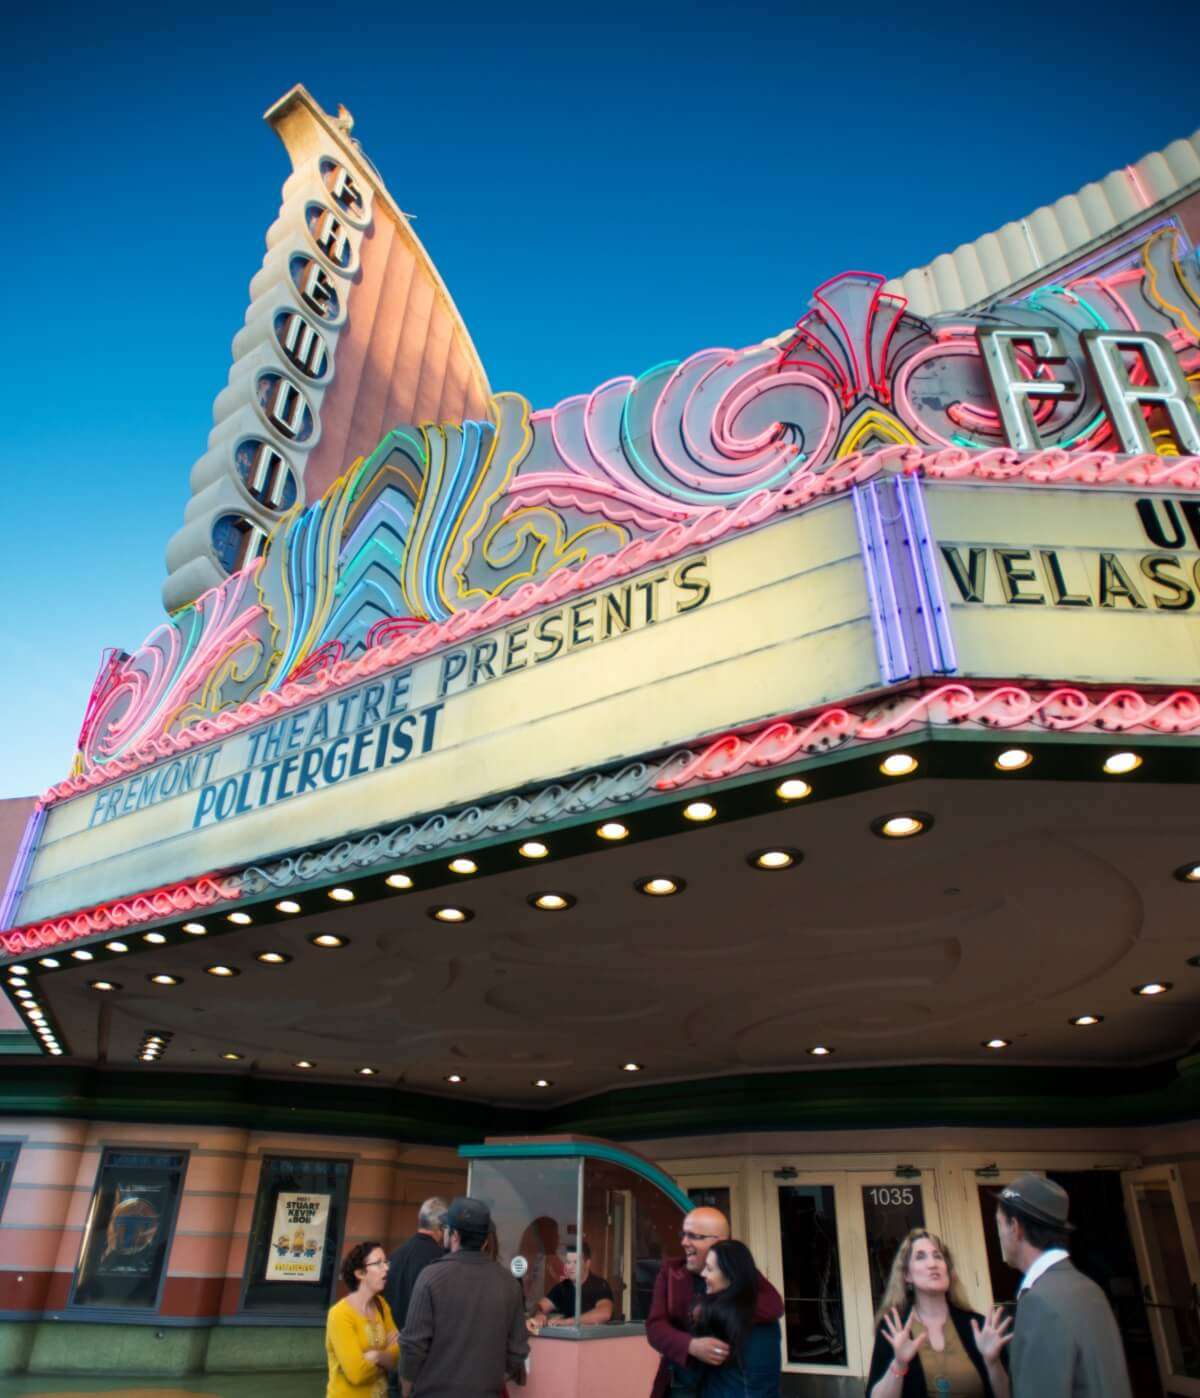 The historic Fremont Theater in San Luis Obispo, California